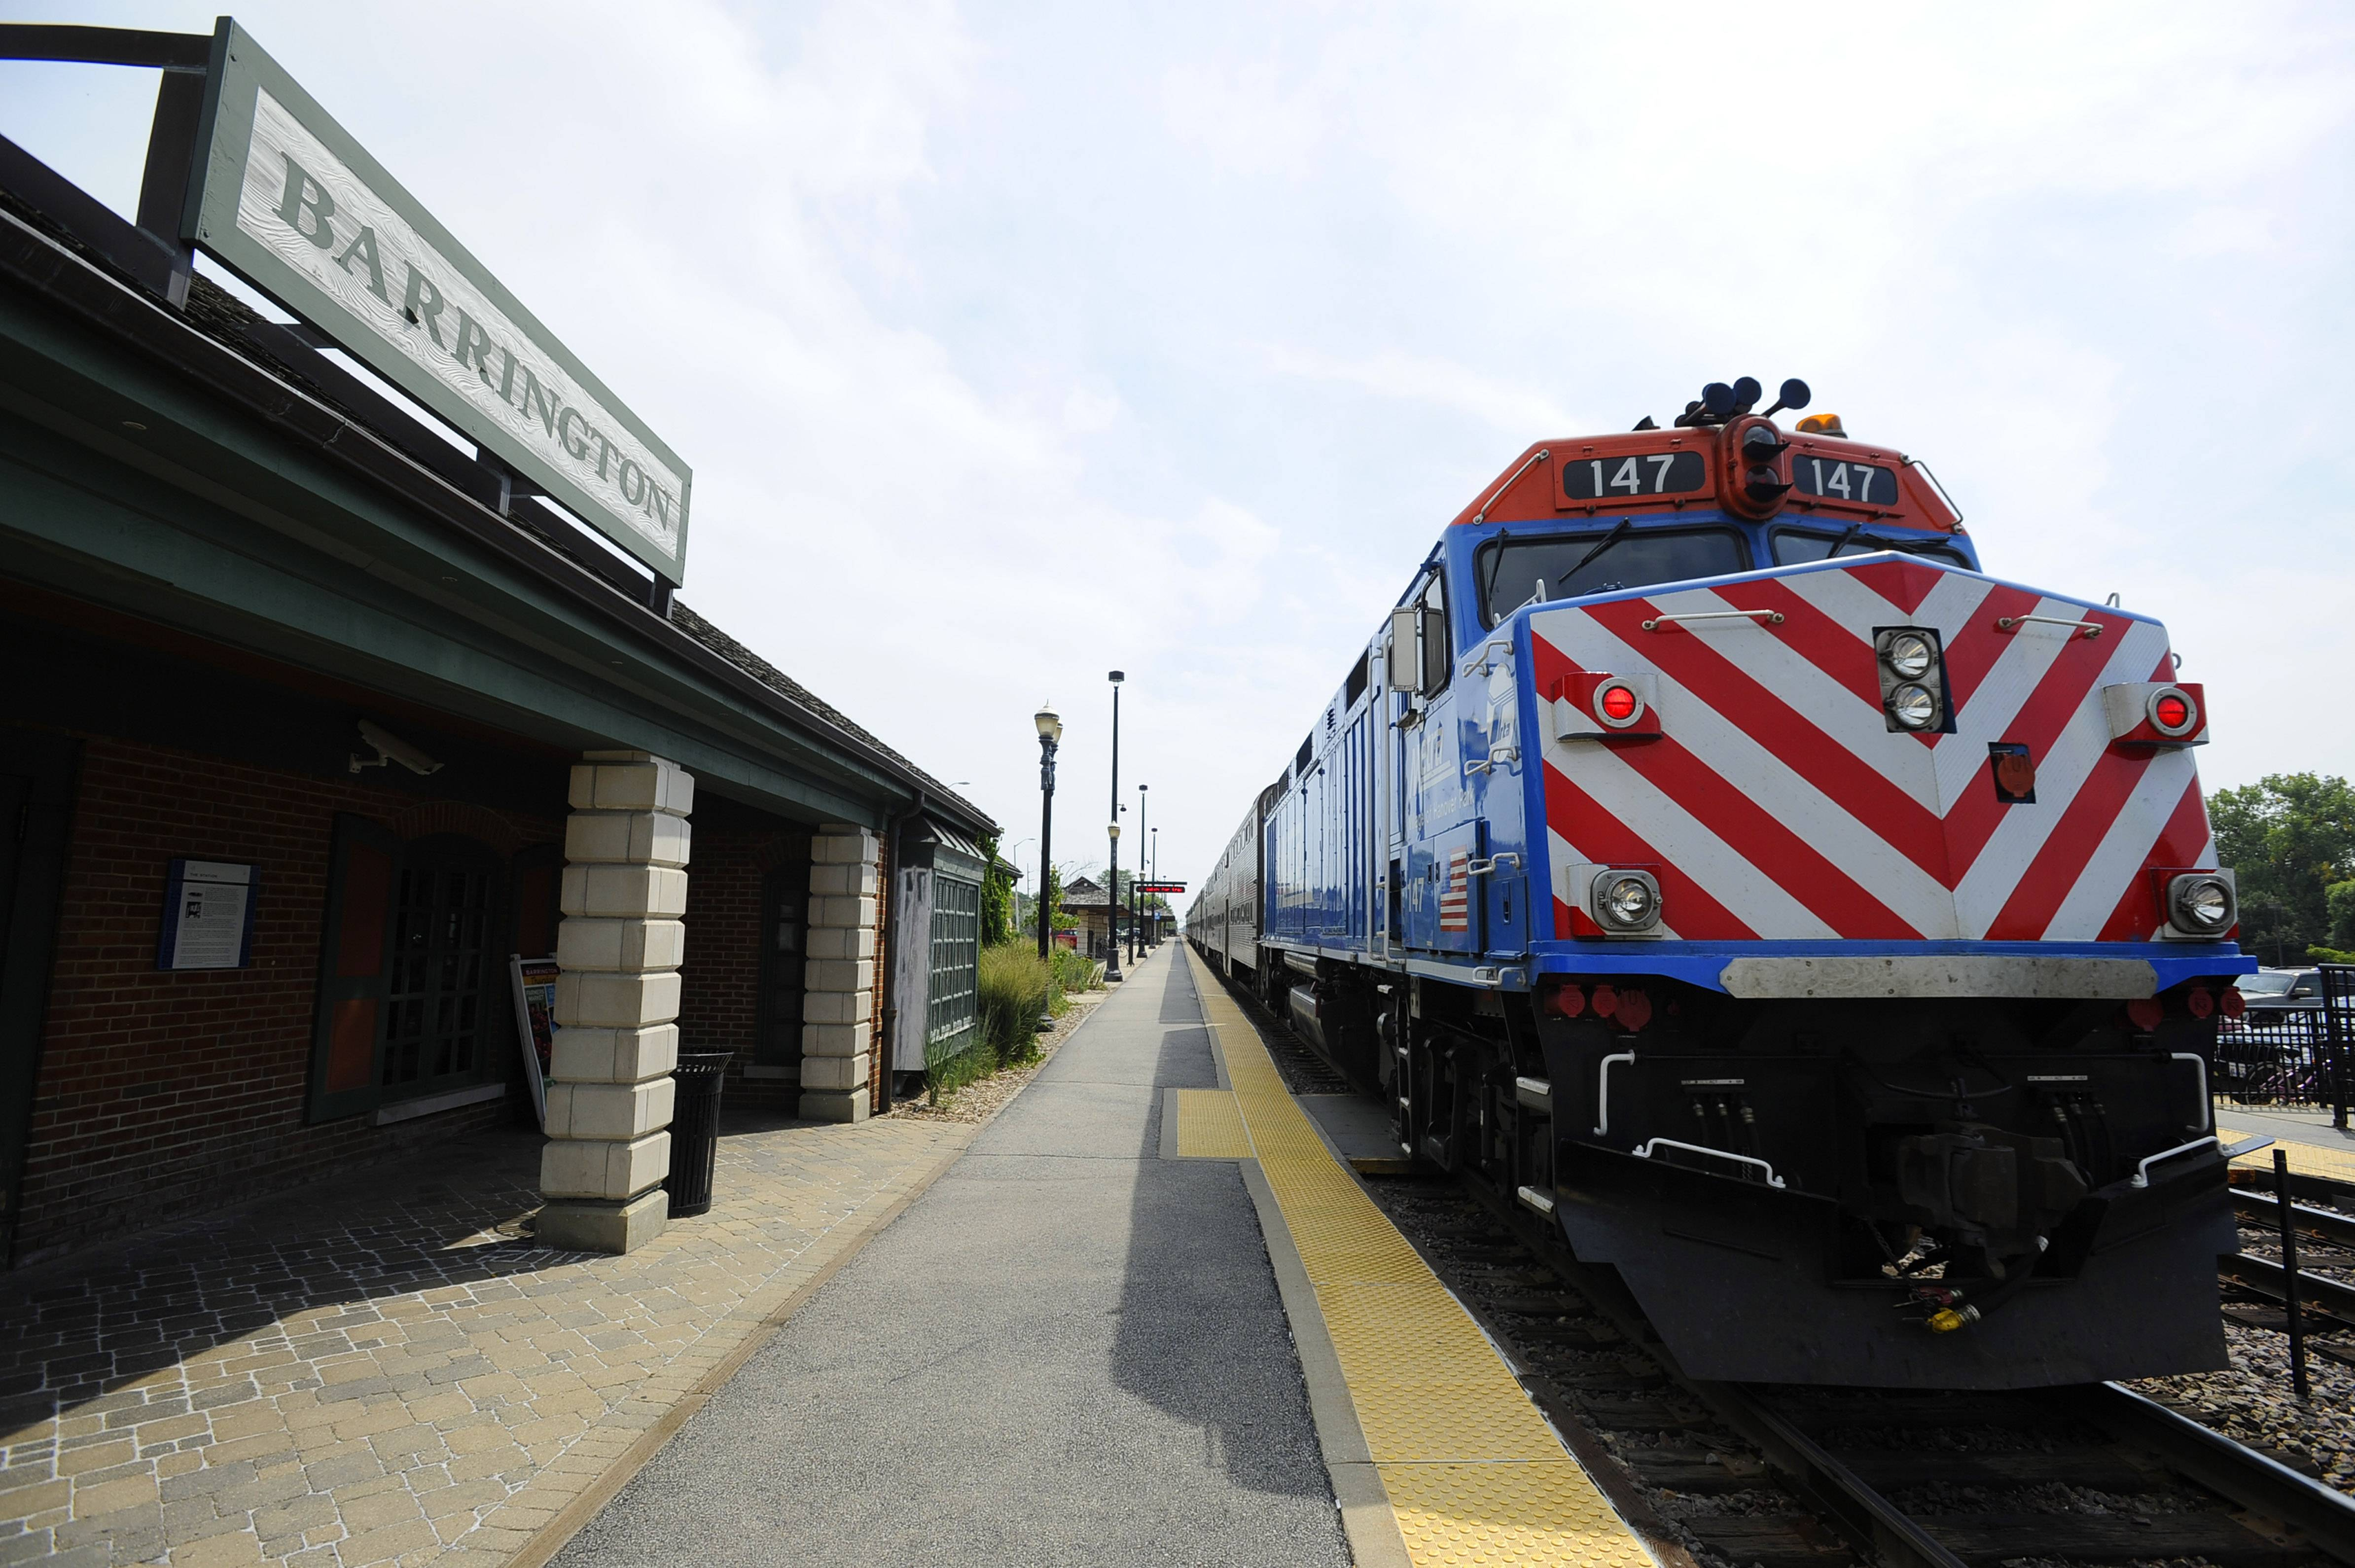 The Barrington Metra station will get an upgrade this summer.